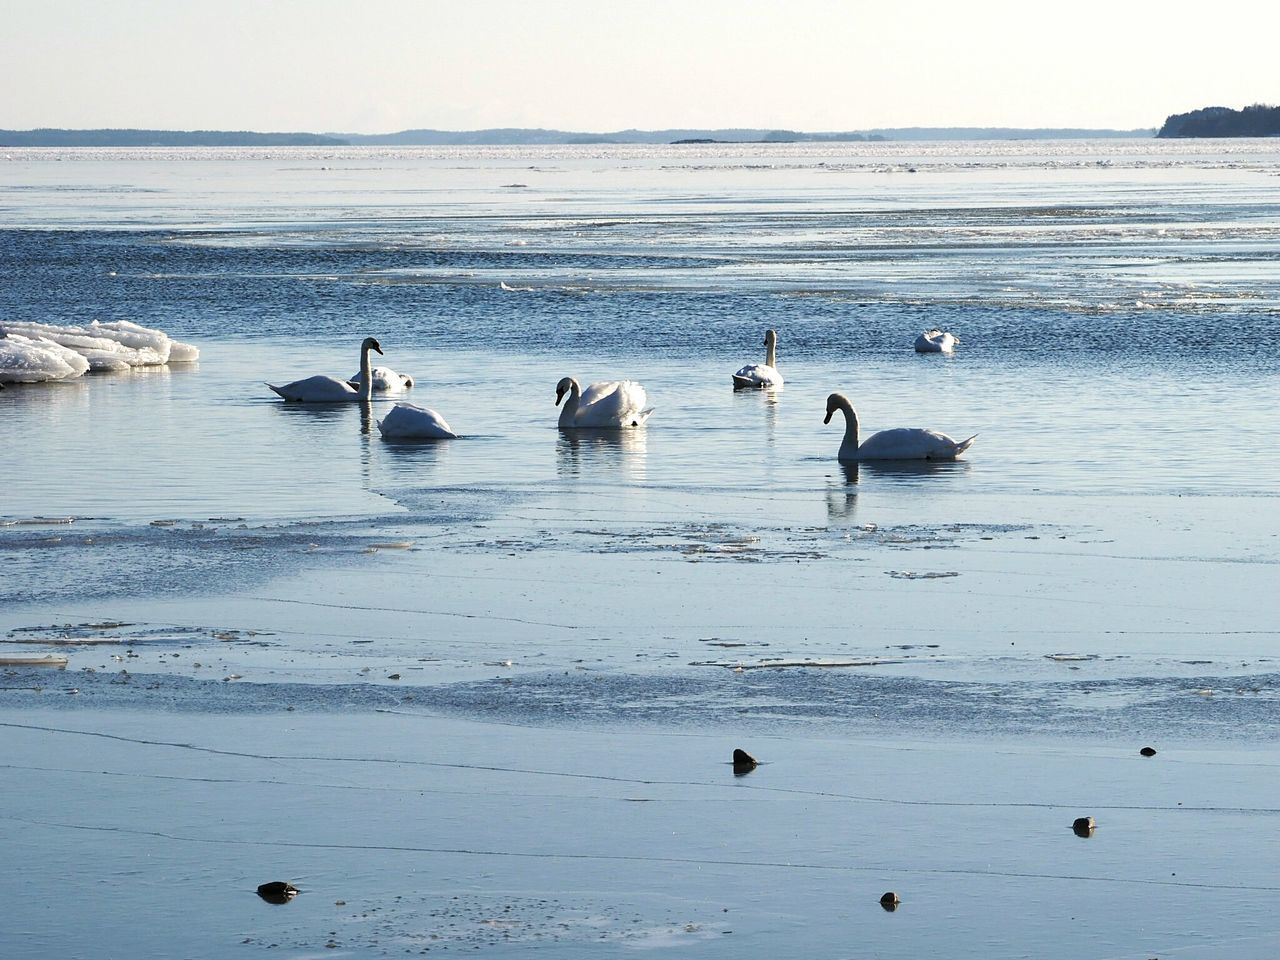 Sea Water Nature Bird Beauty In Nature Outdoors Sky Animal Wildlife Horizon Over Water Animals In The Wild Large Group Of Animals Winter Time Swans Swimming Cold Temperature Winter Nature Outside Frozen Sea Winter Bird Eating Animals In The Wild Animal Themes Bird Meetings